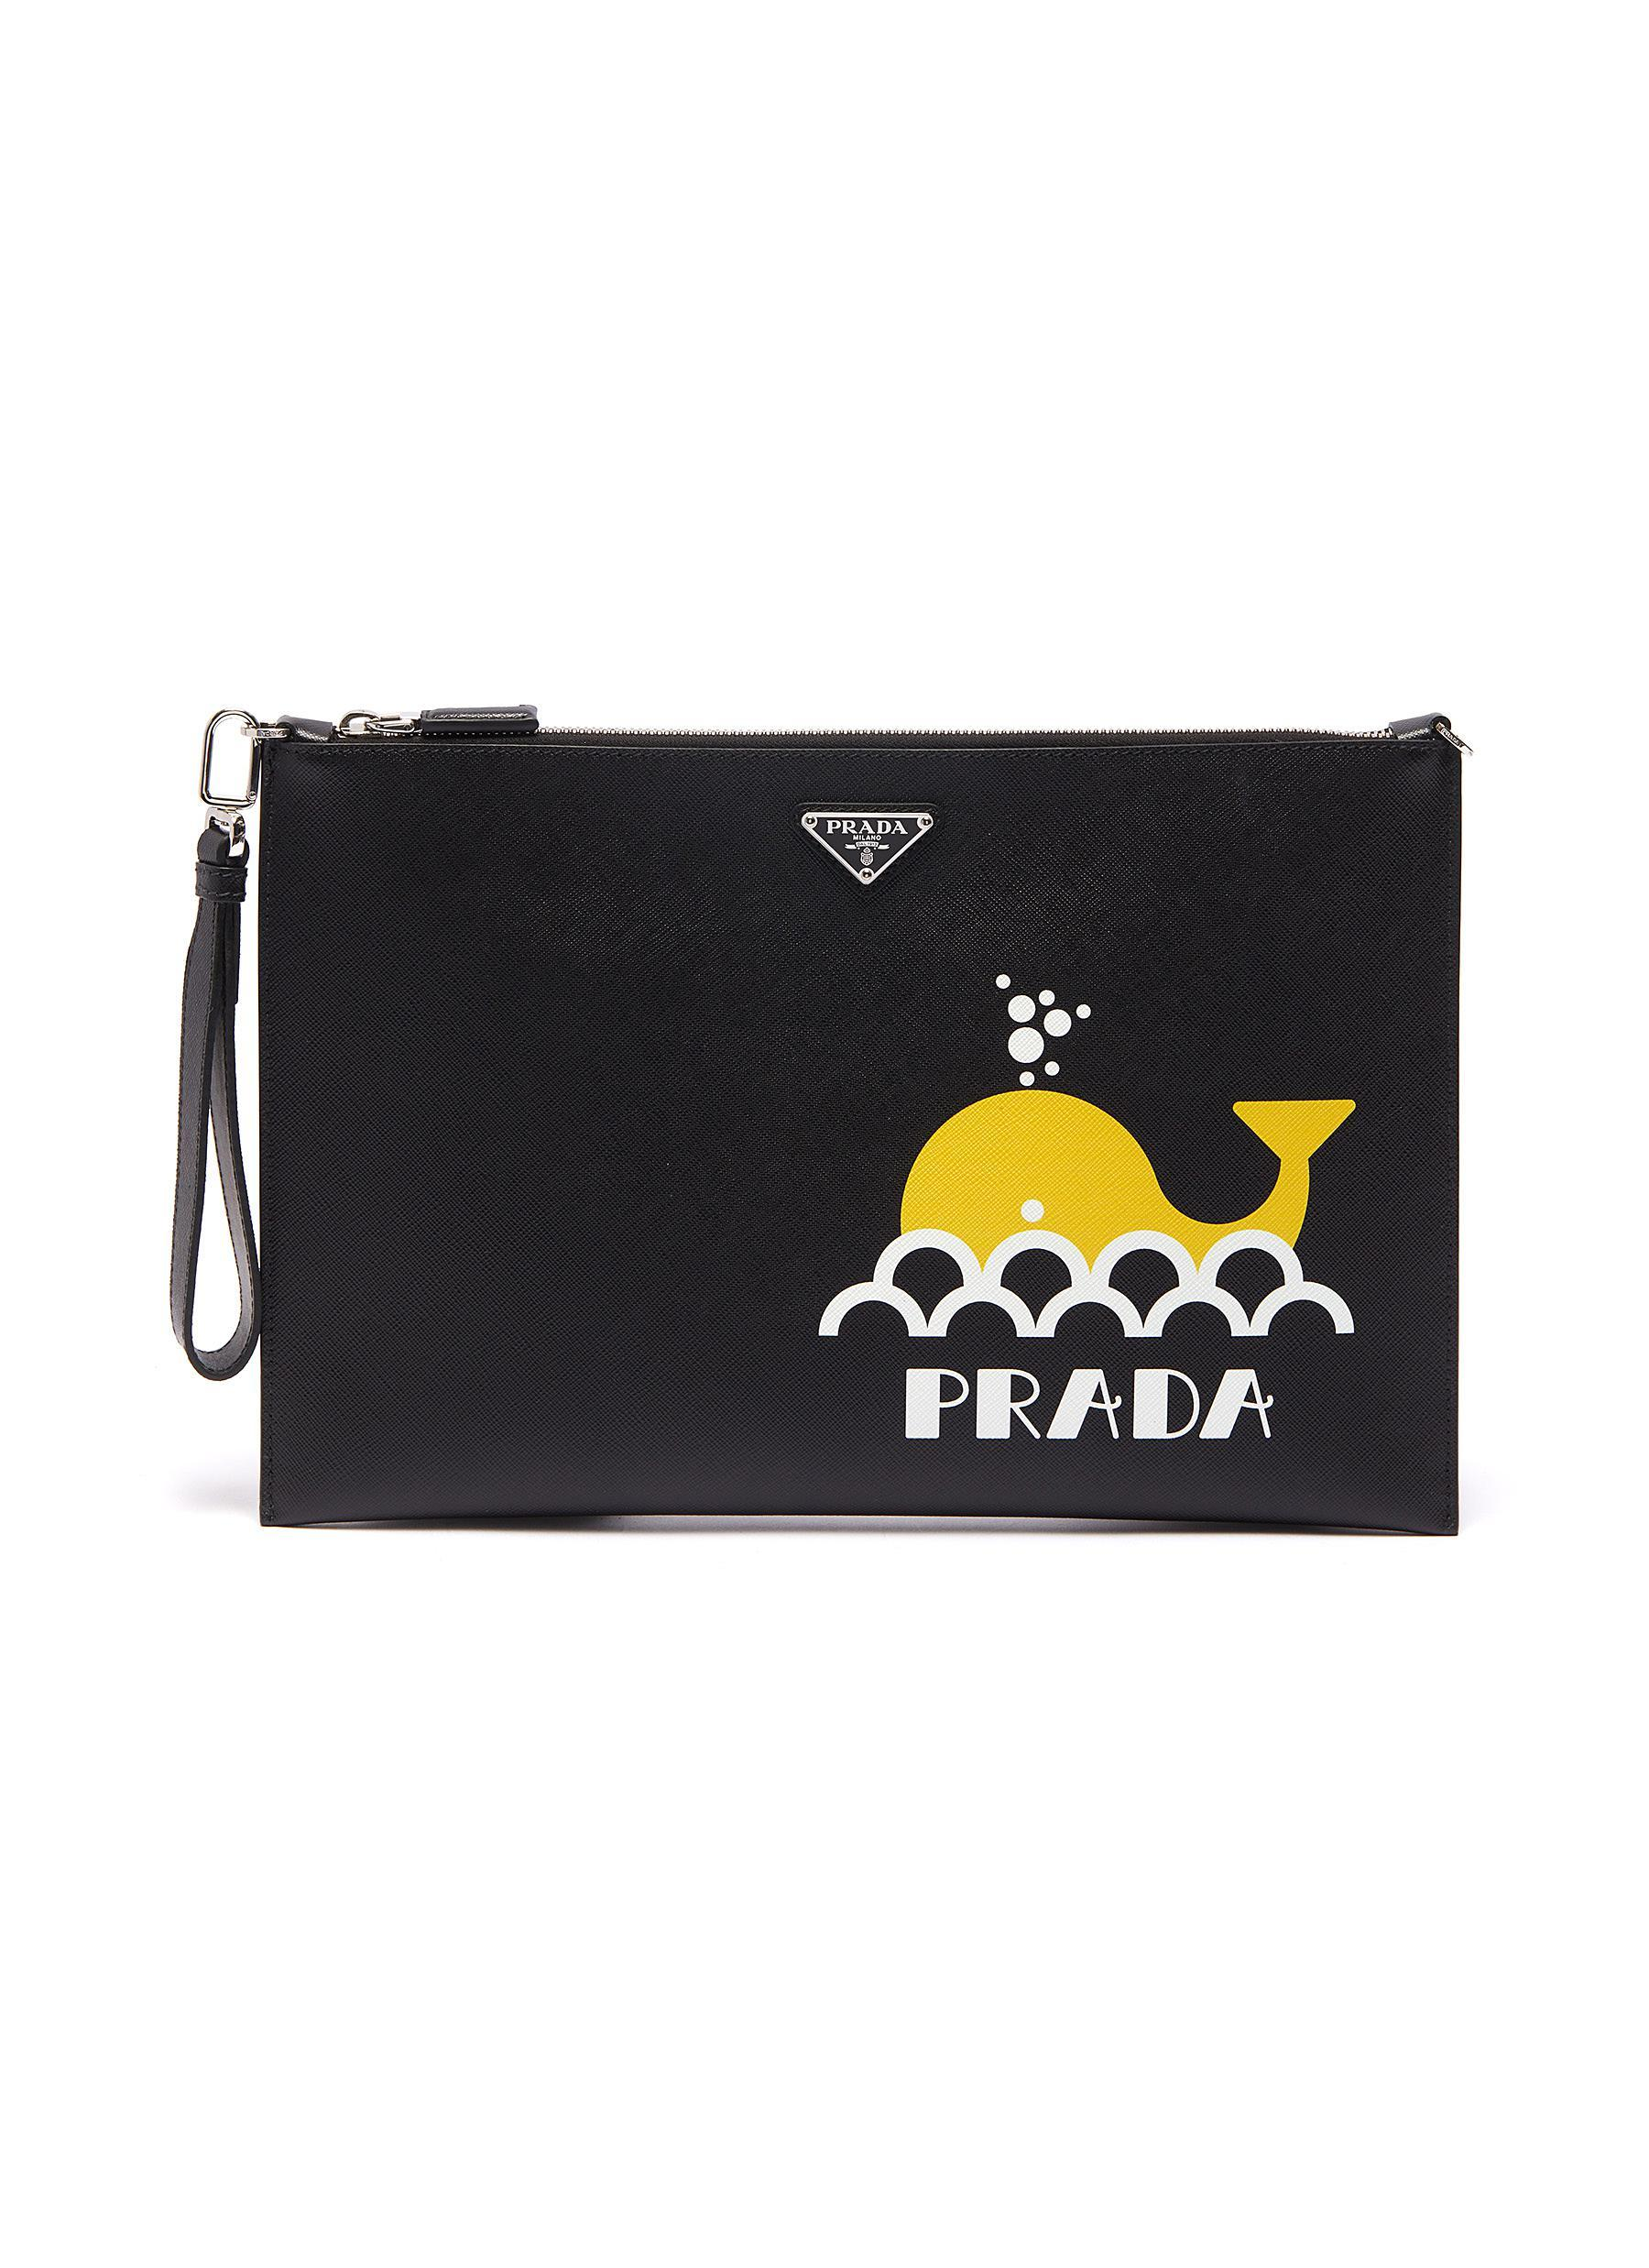 b11575a225 Lyst - Prada Logo Graphic Whale Print Saffiano Leather Pouch in ...